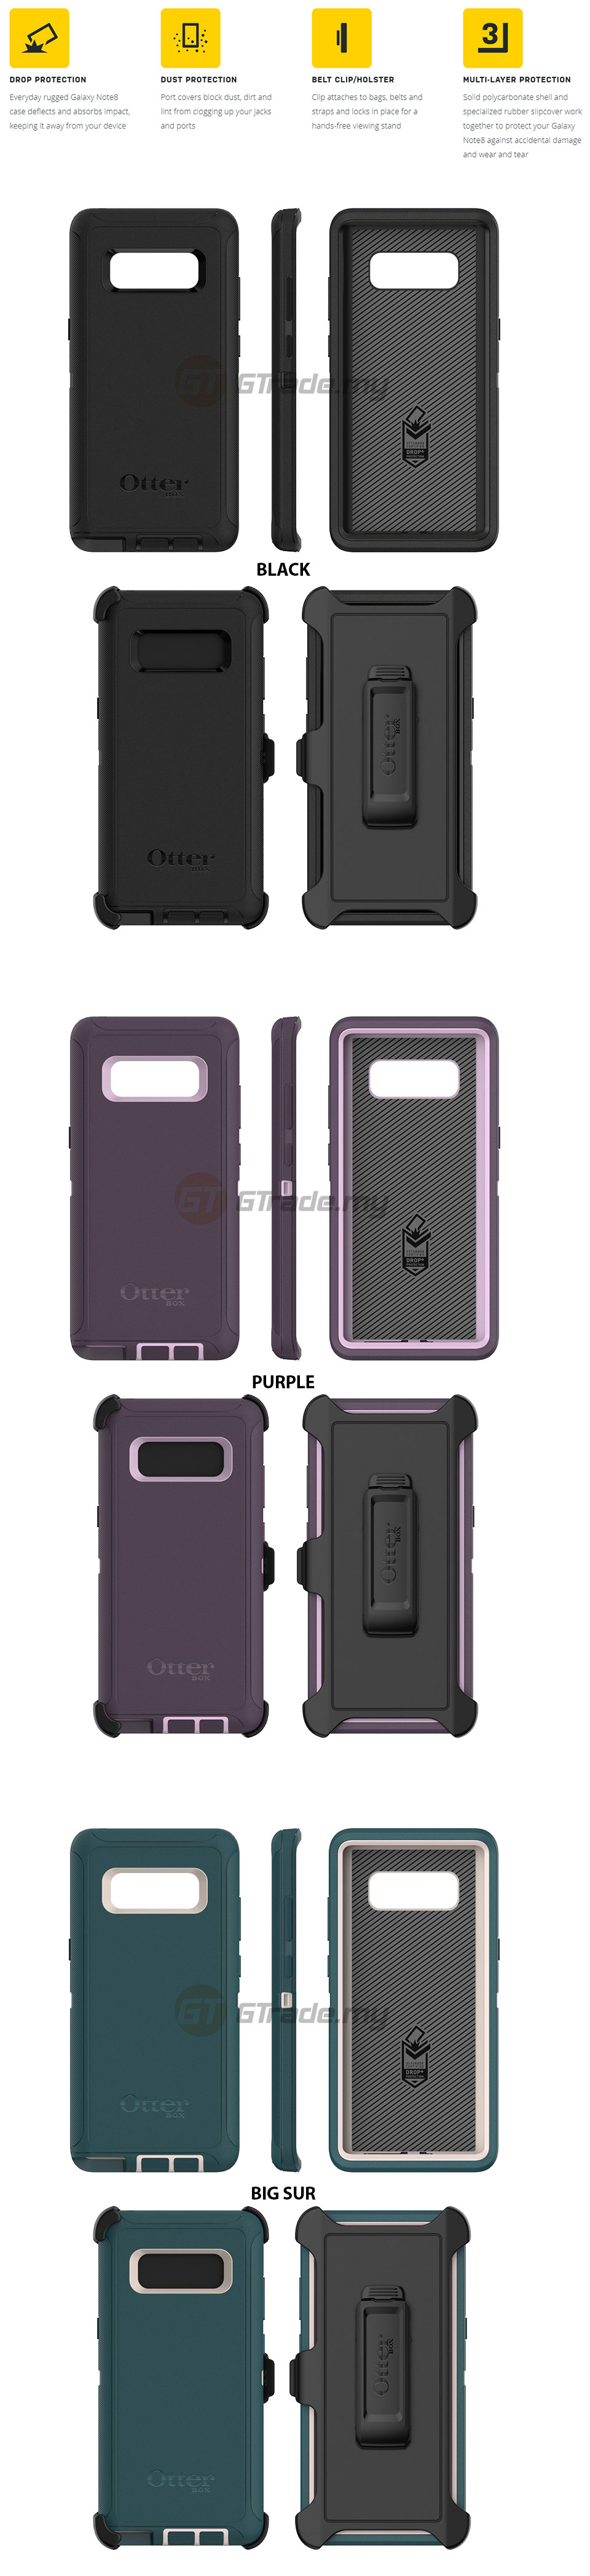 sneakers for cheap 79126 eabb0 OTTERBOX Defender Belt Clip Holster Case | Samsung Galaxy Note 8 ...